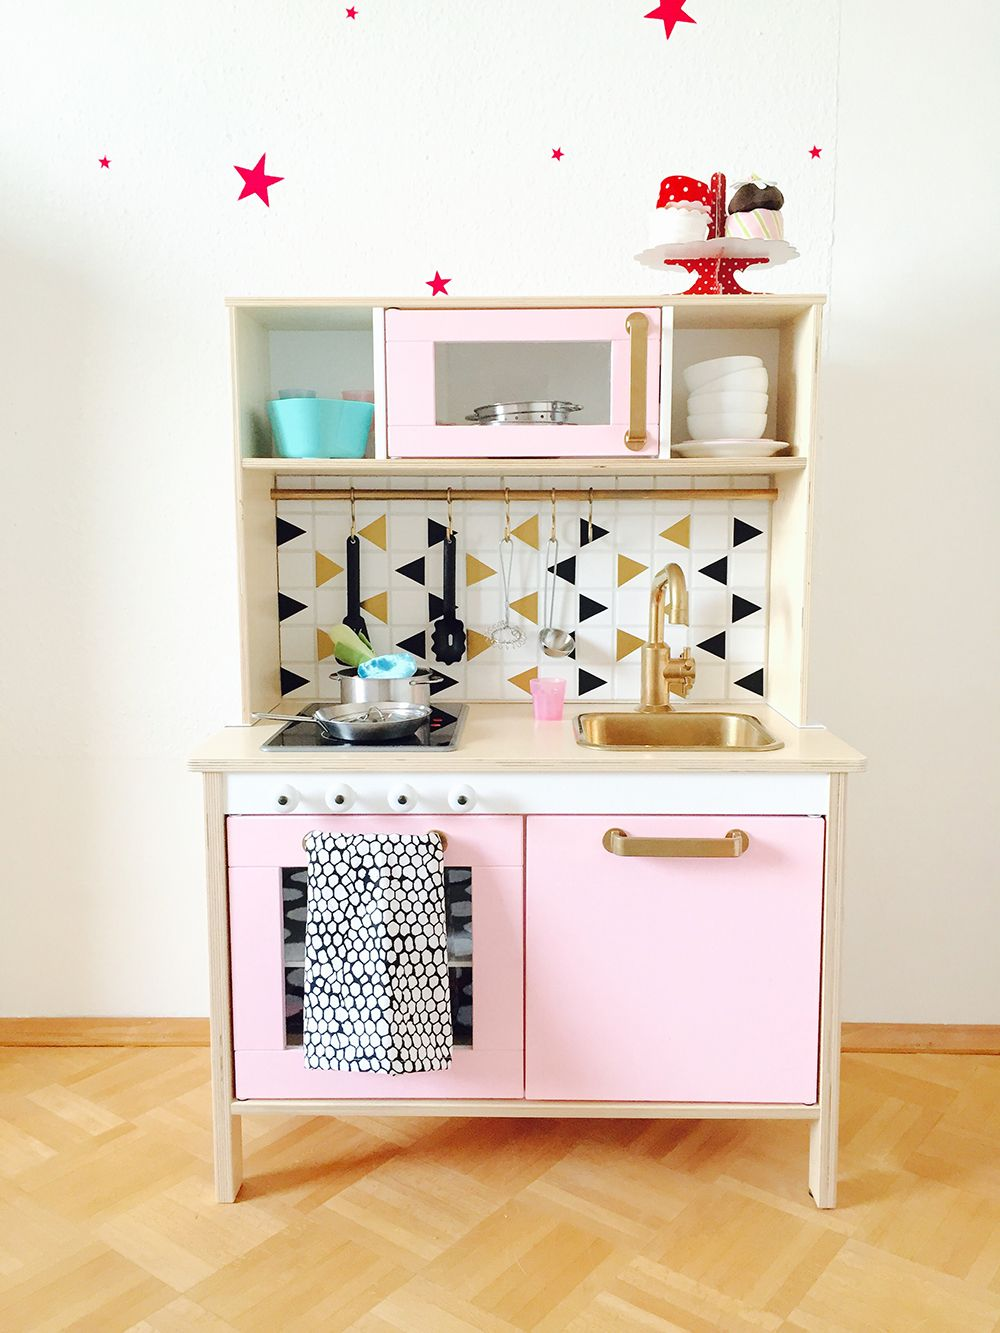 ikea duktig hacks 1 keuken op 12 manieren ava bedroom en 2018 pinterest ikea cuisini re. Black Bedroom Furniture Sets. Home Design Ideas